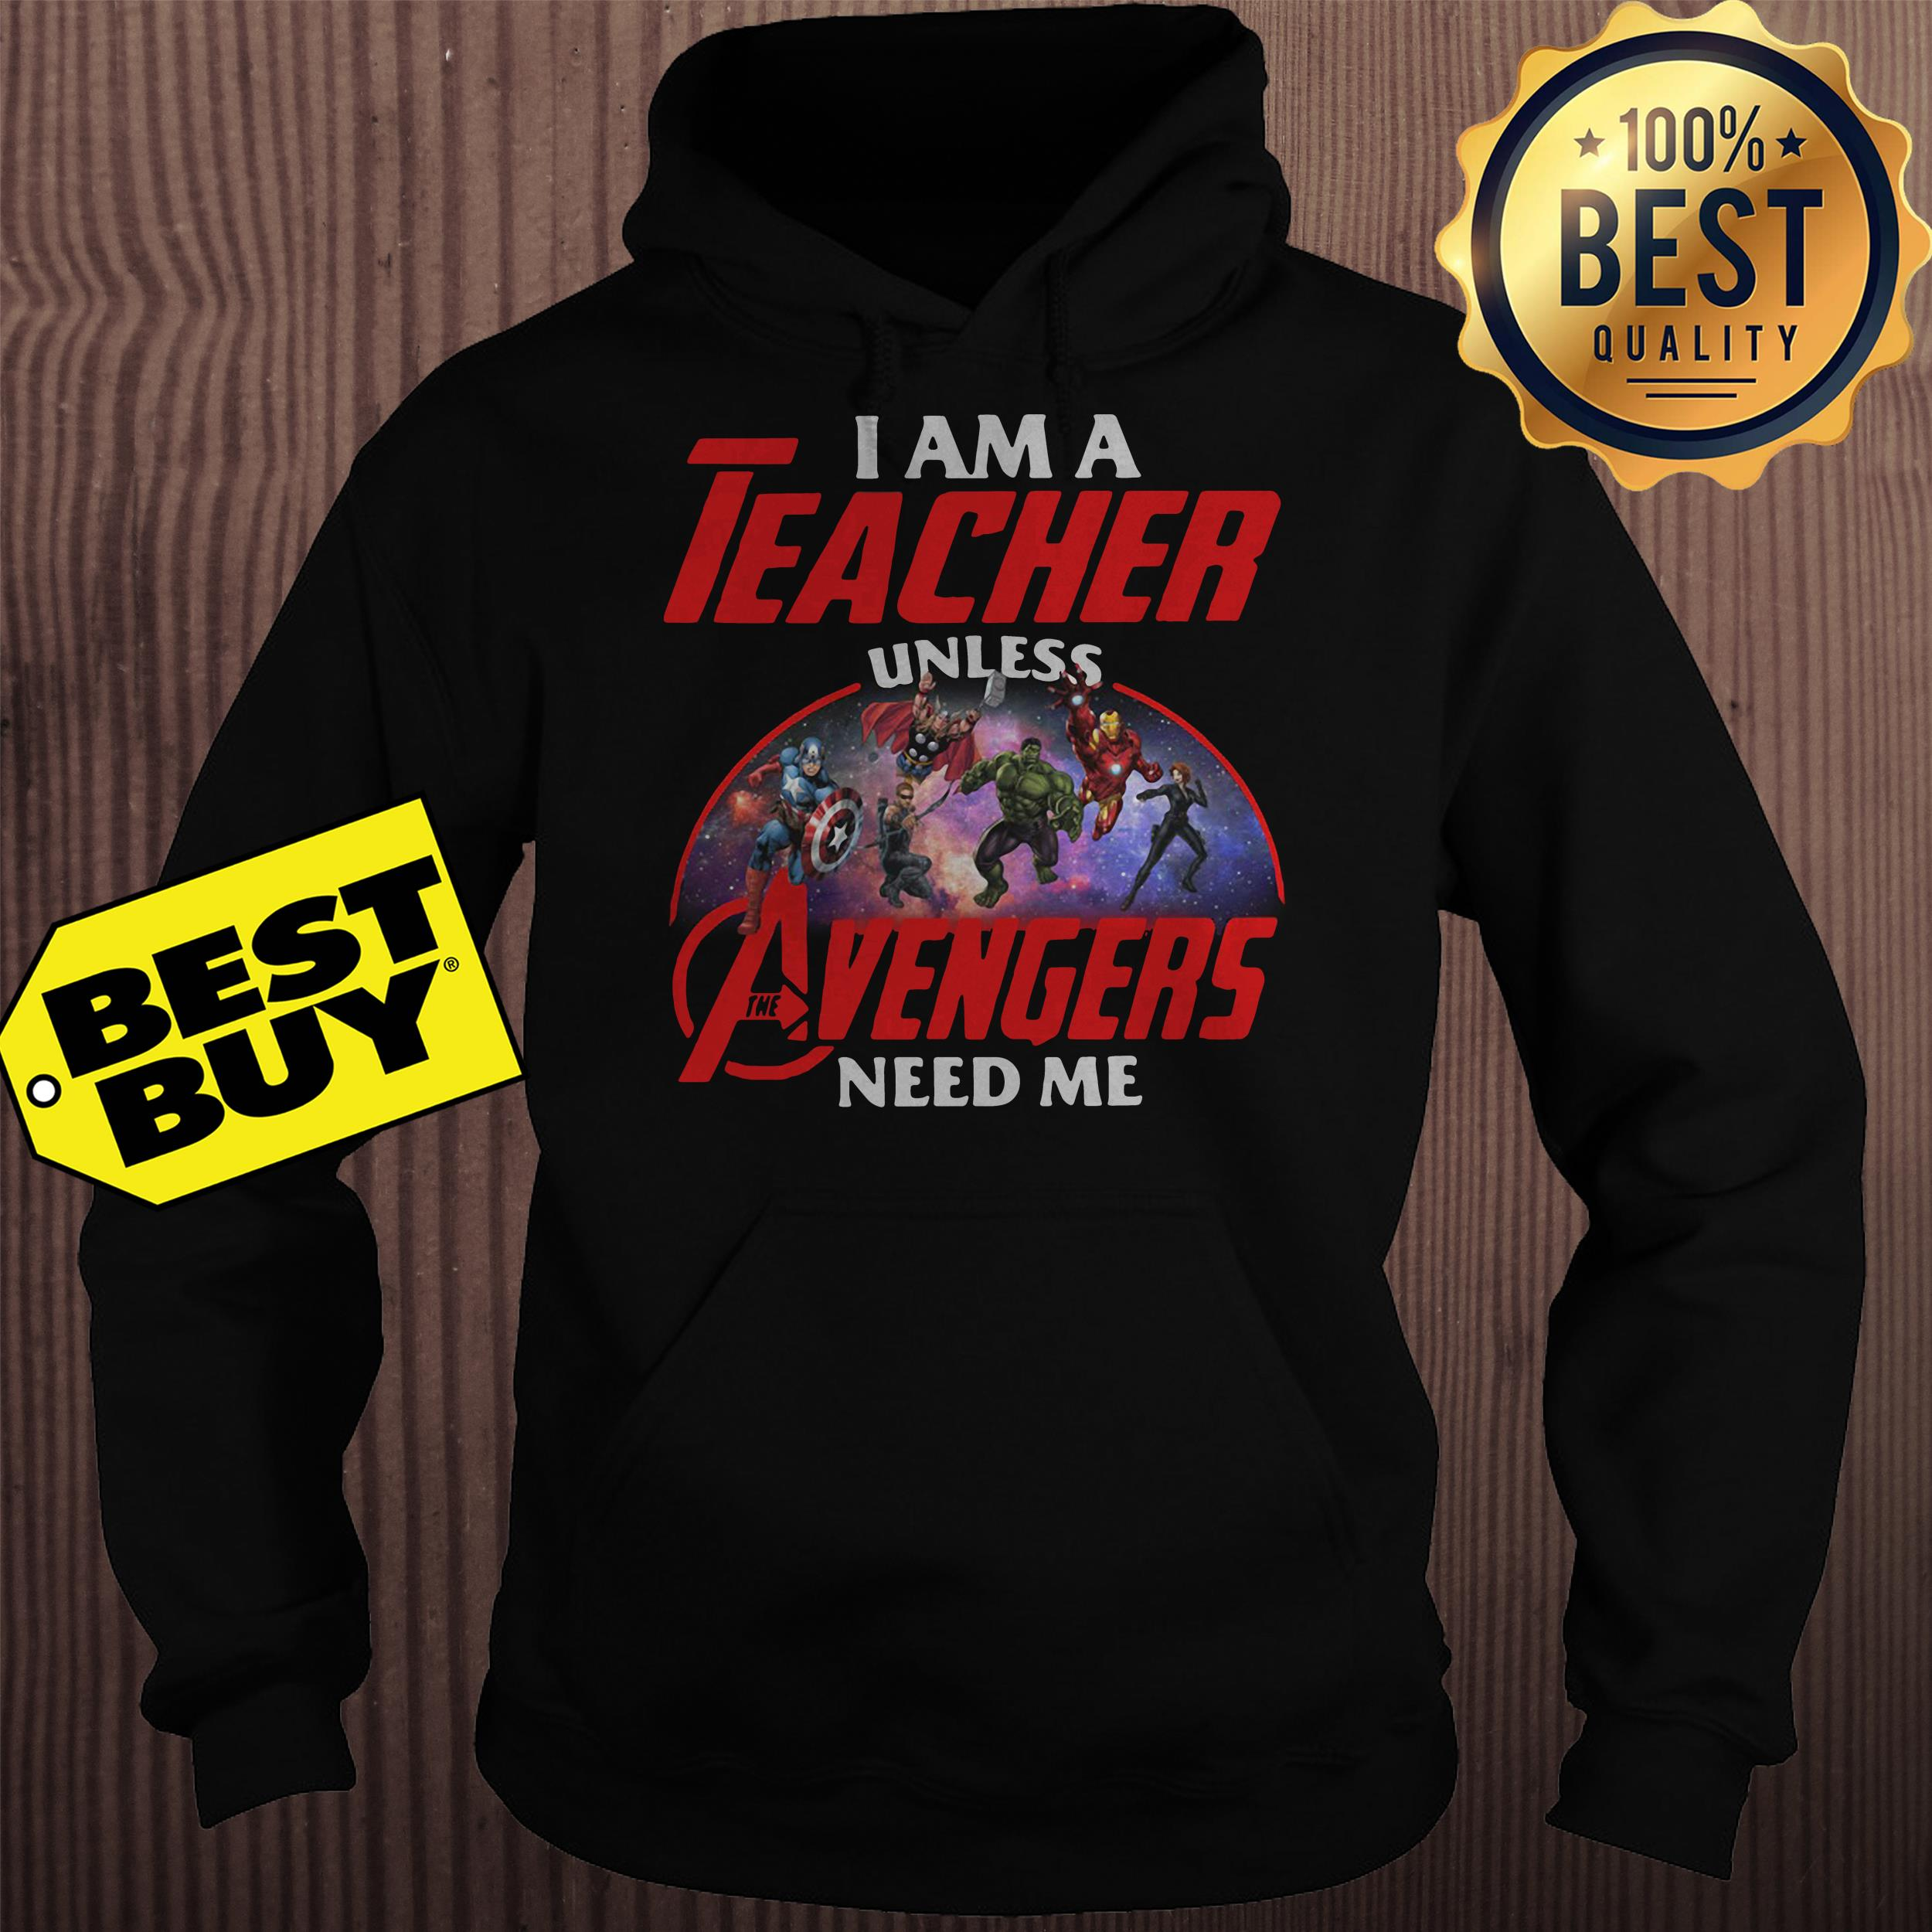 I am a teacher unless Avengers need me hoodie